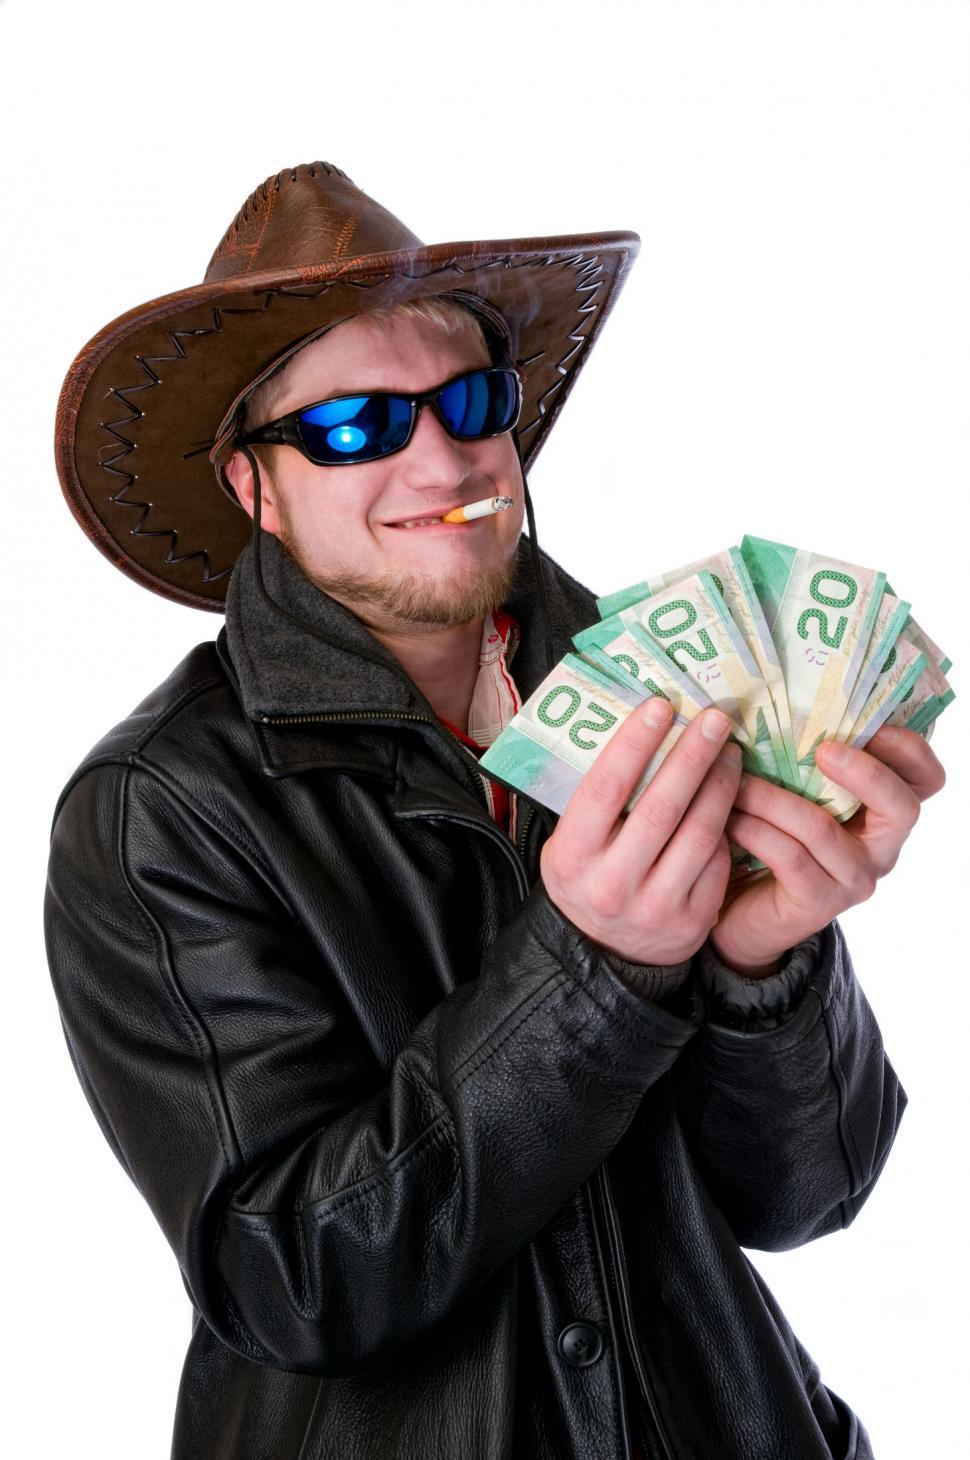 Download Free Stock Photo of Cowboy Success